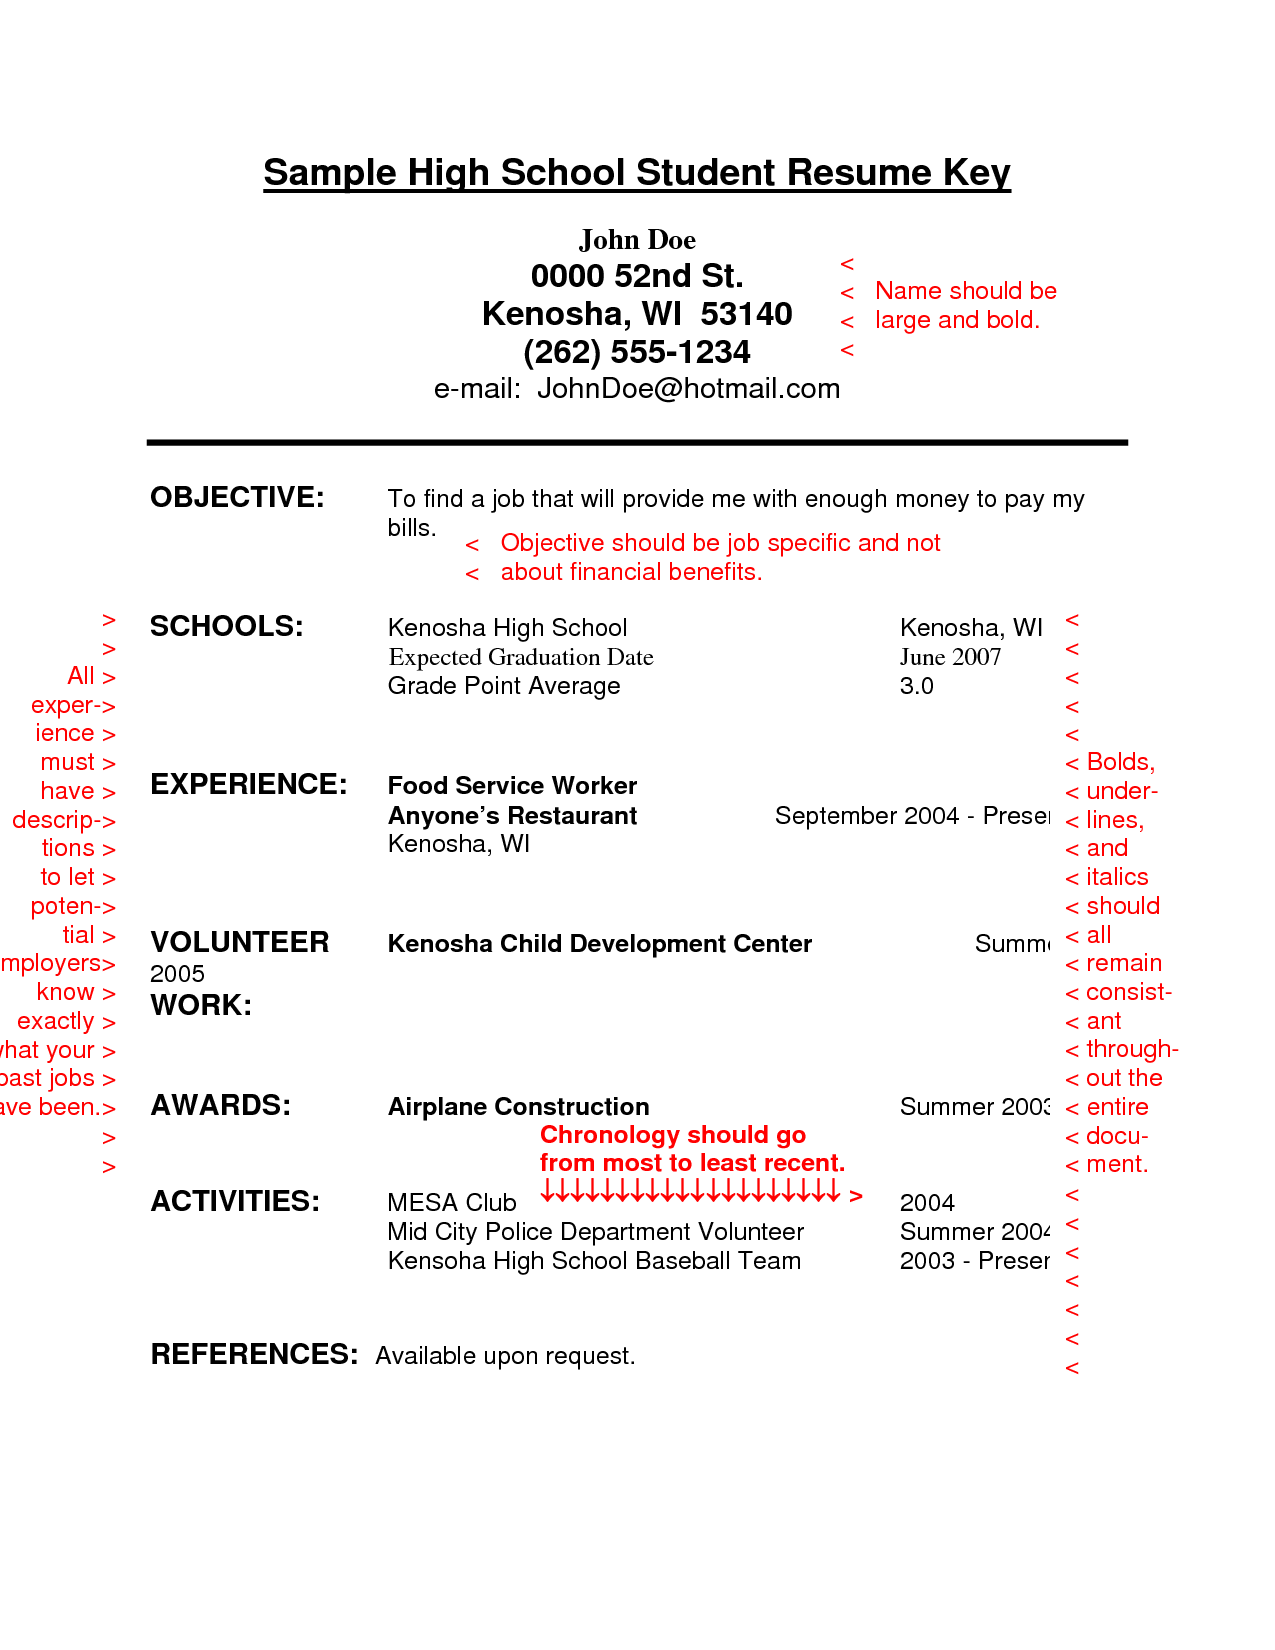 Resume Sample For High School Students With No Experience   Http://www.  High School Student Resume Template No Experience